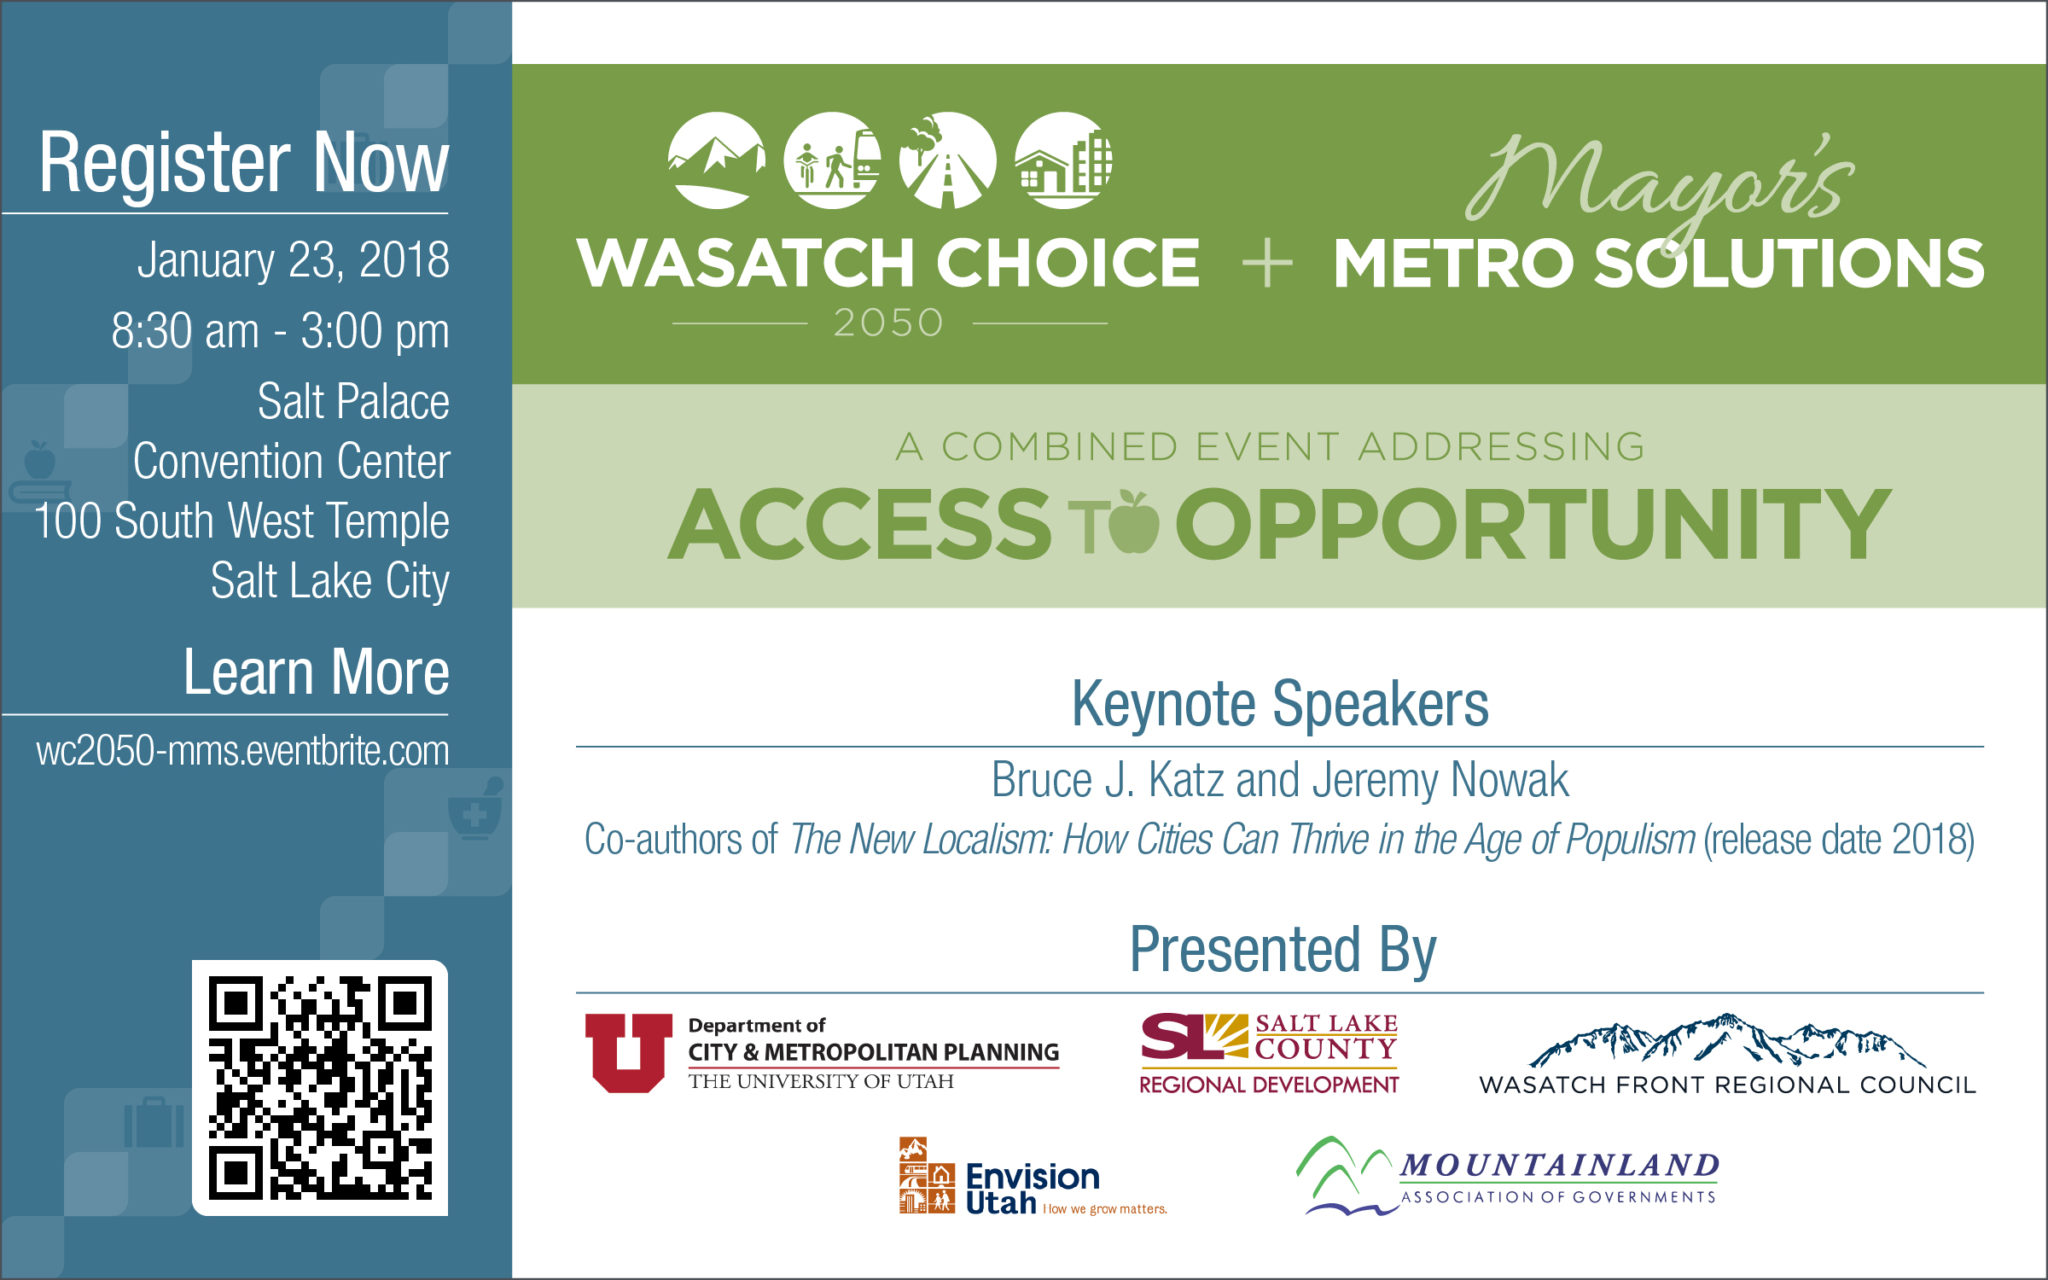 Register now for the Wasatch Choice 2050 + Mayor's Metro Solutions: A Combined Event Addressing Access to Opportunity event.